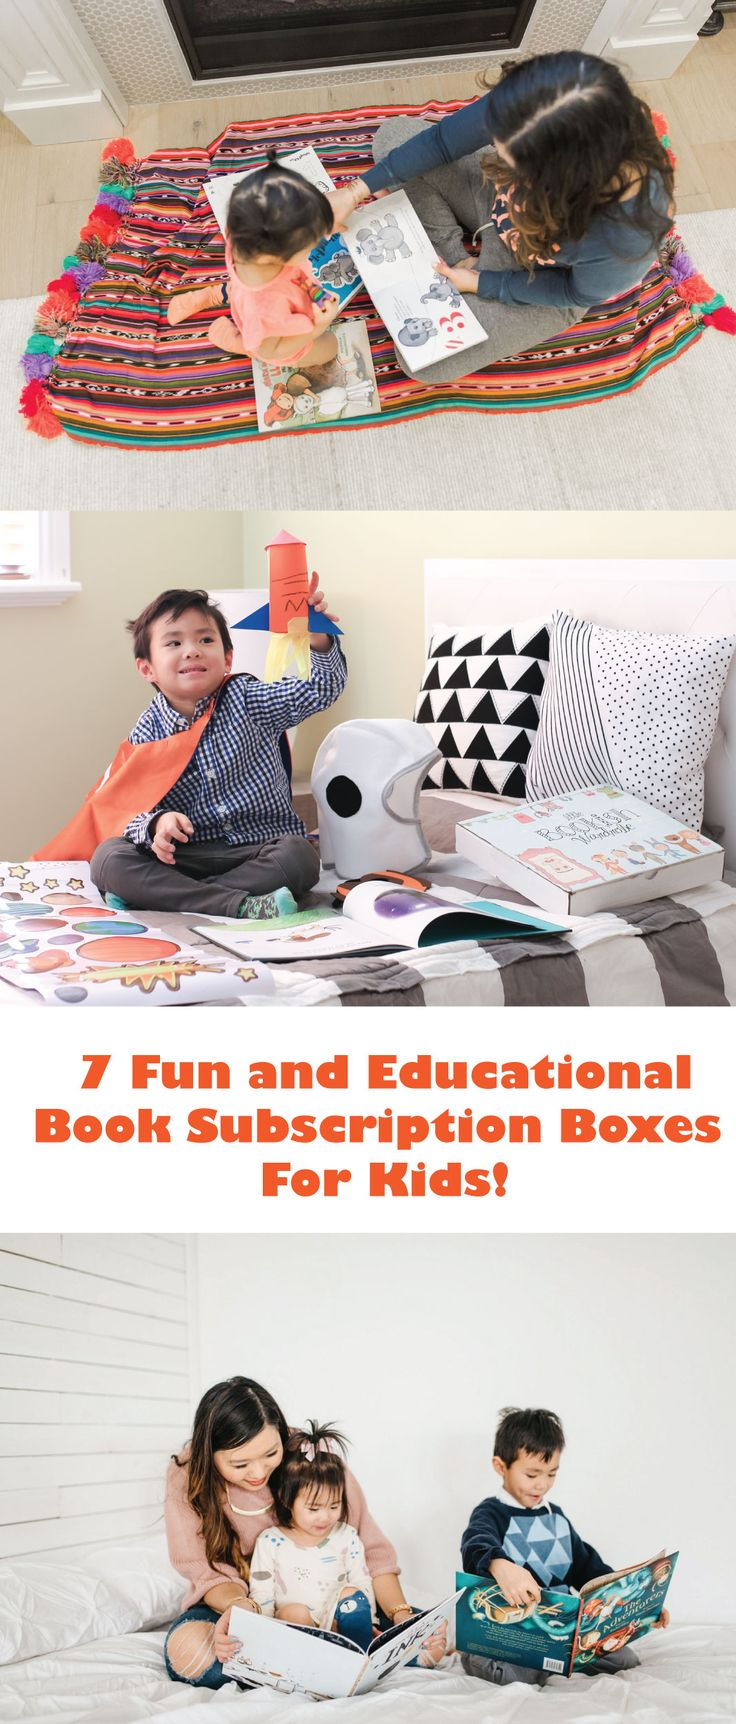 Mamas and Minis Collective – Kid's Book Subscription Box Guide!